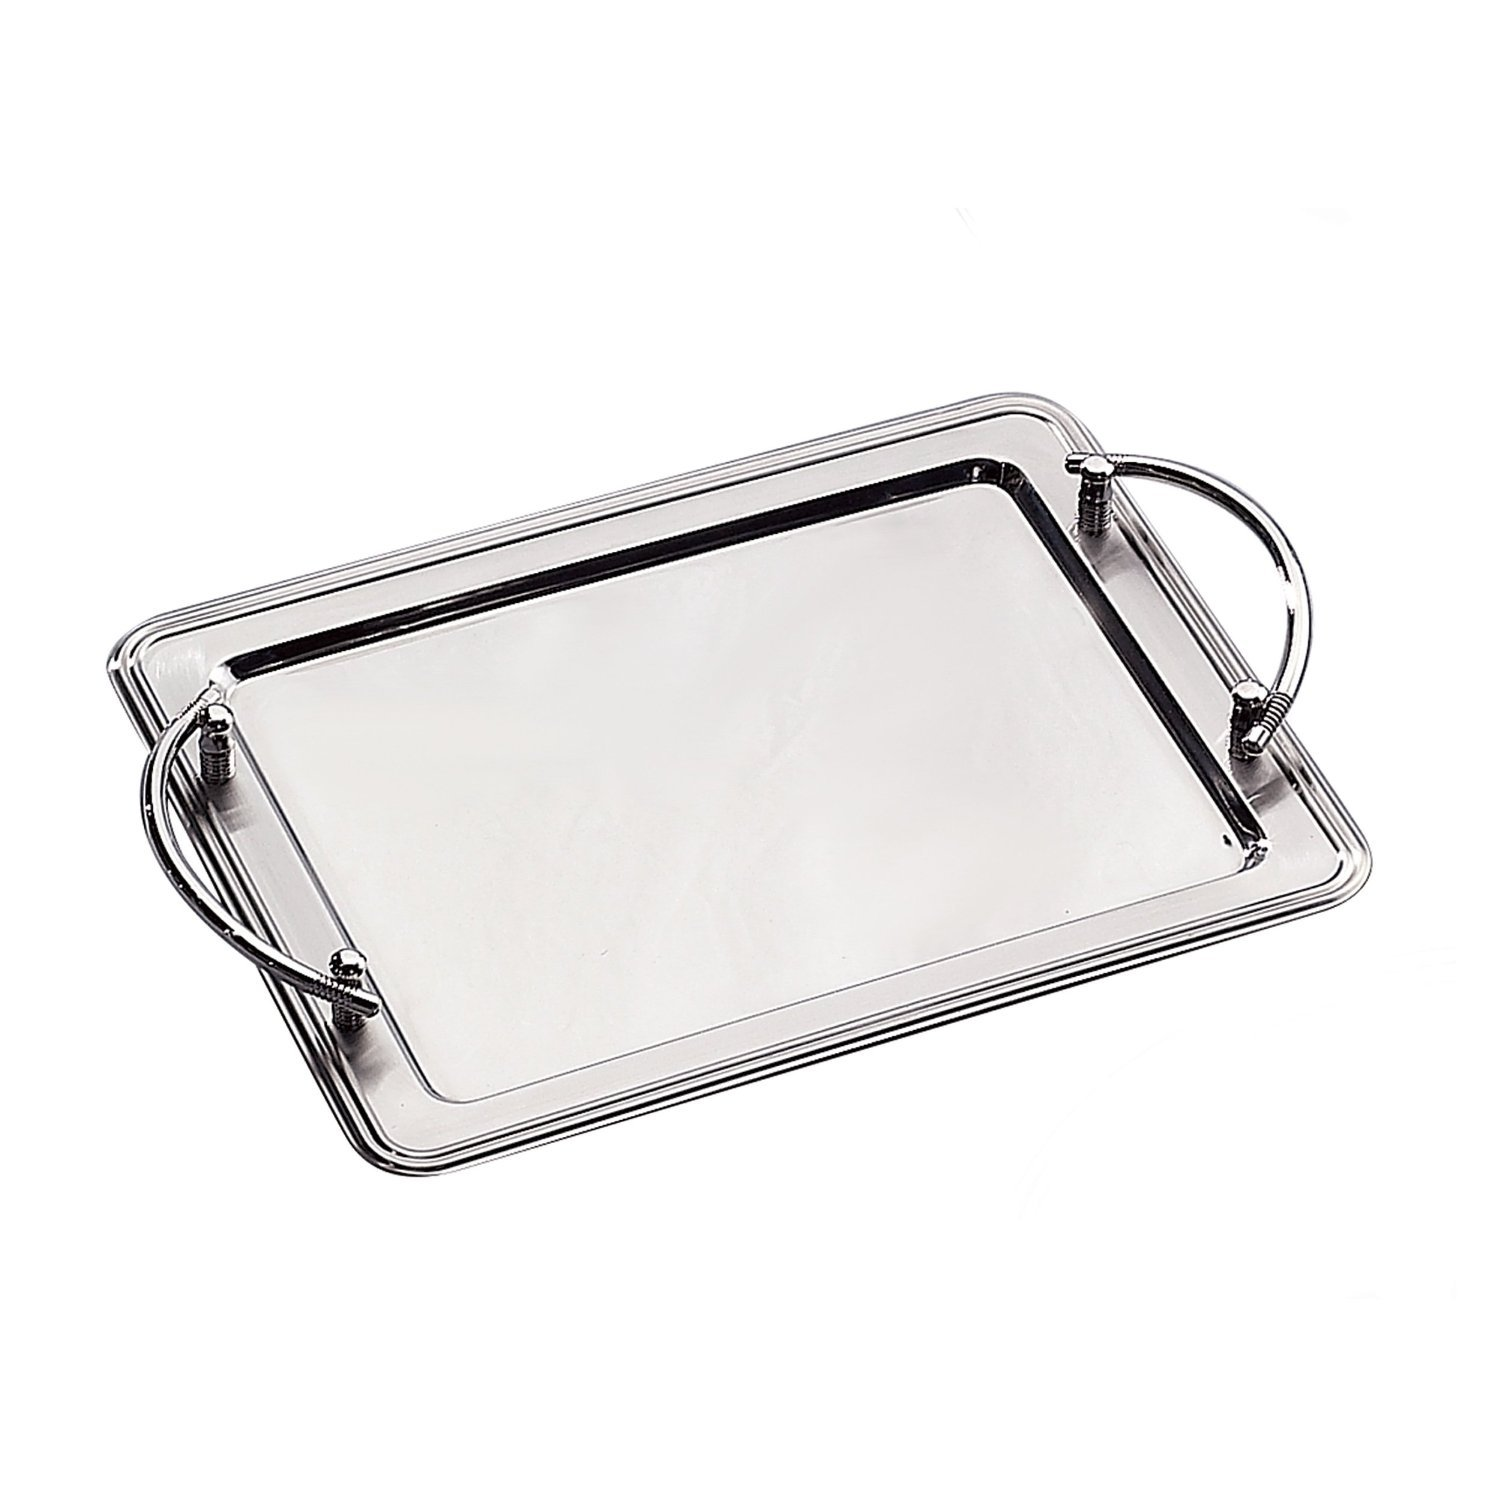 Amazon.com: Elegance Silver 73029 Bandeja rectangular ...